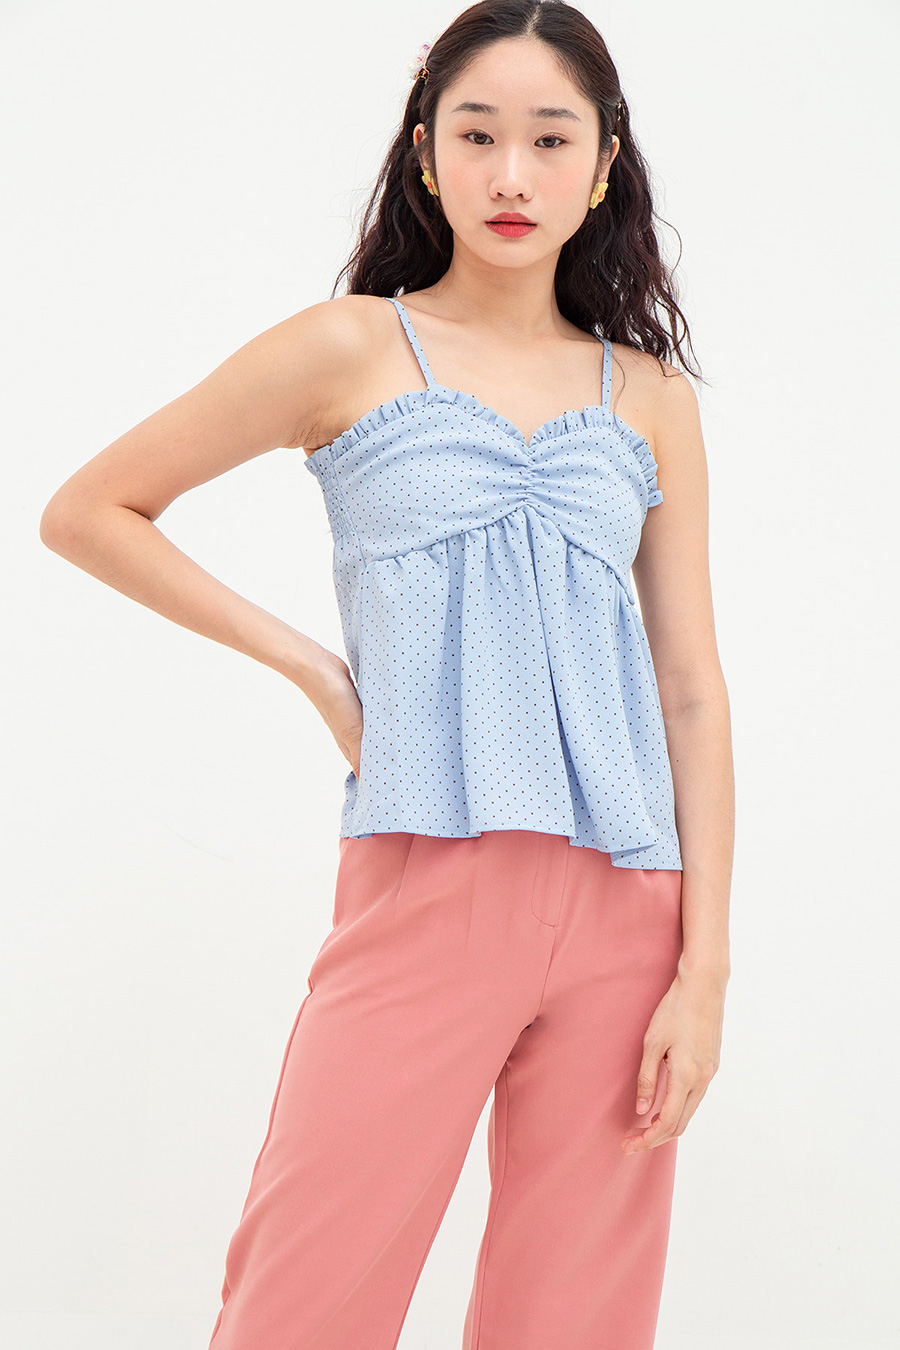 GAELLE TOP - PERRY DOTTY